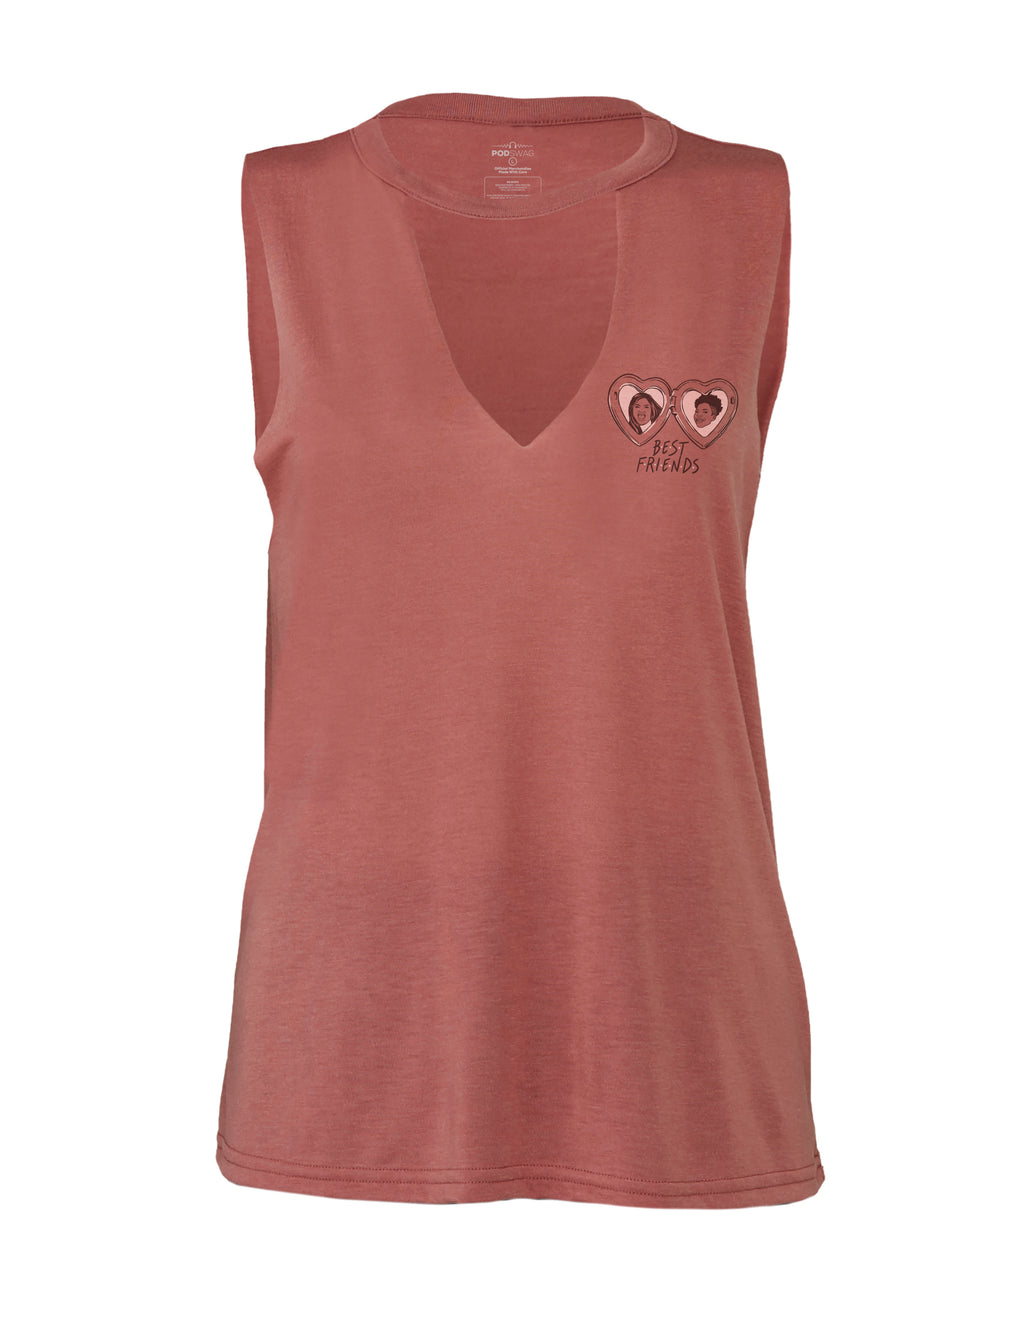 Best Friends: Pocket Locket Tank